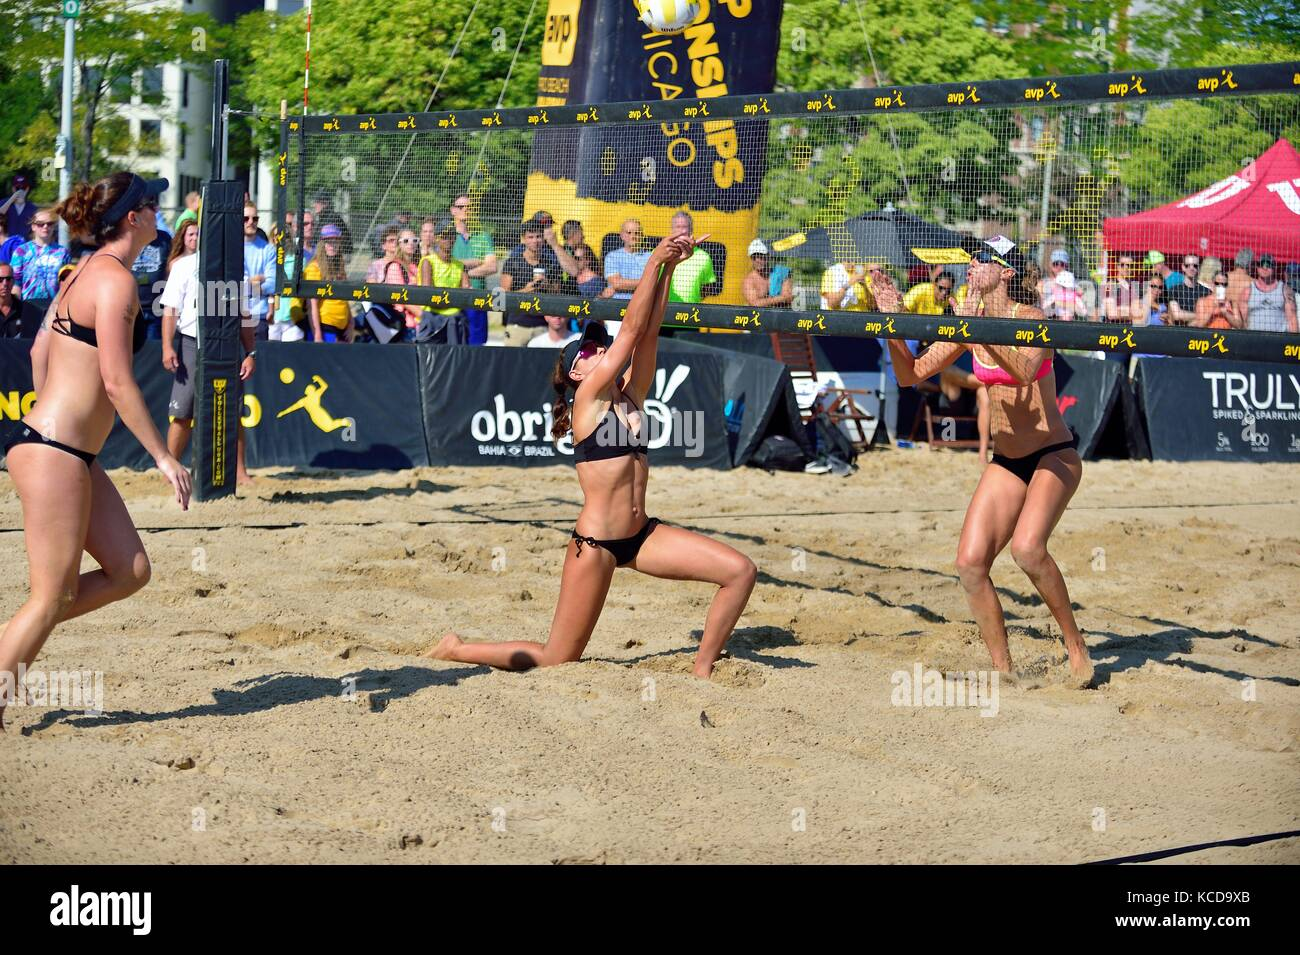 Player setting for a kill shot for her partner during the quarter finals at the AVP 2017 Women's Chicago Championships. - Stock Image